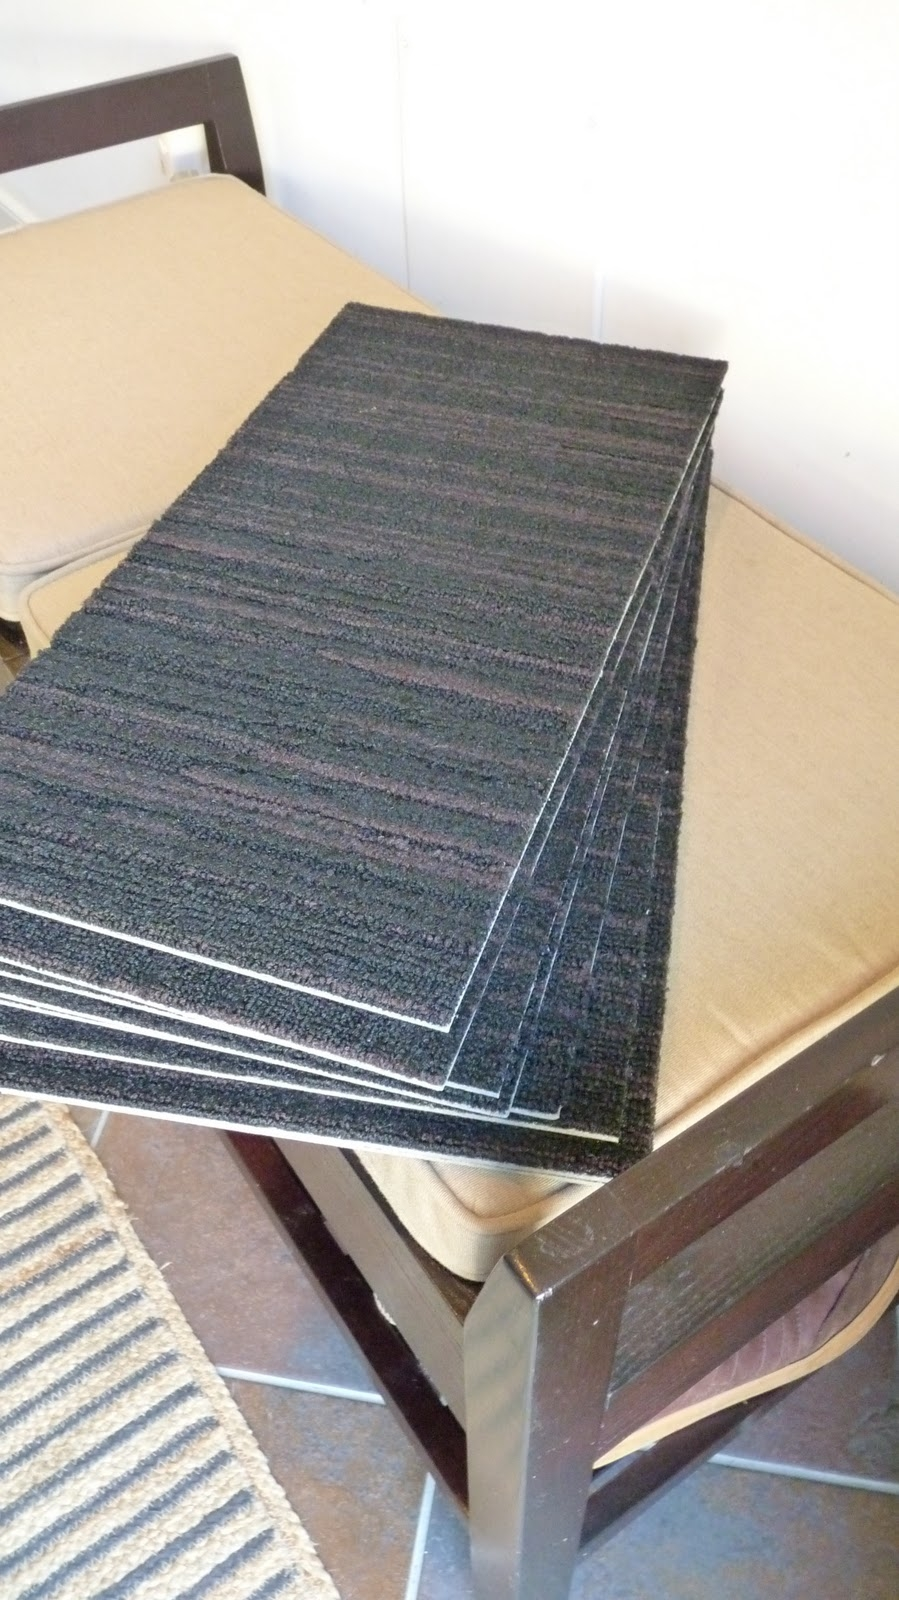 √ Simply Seamless Padded Stair Treads Matching Diy Carpet